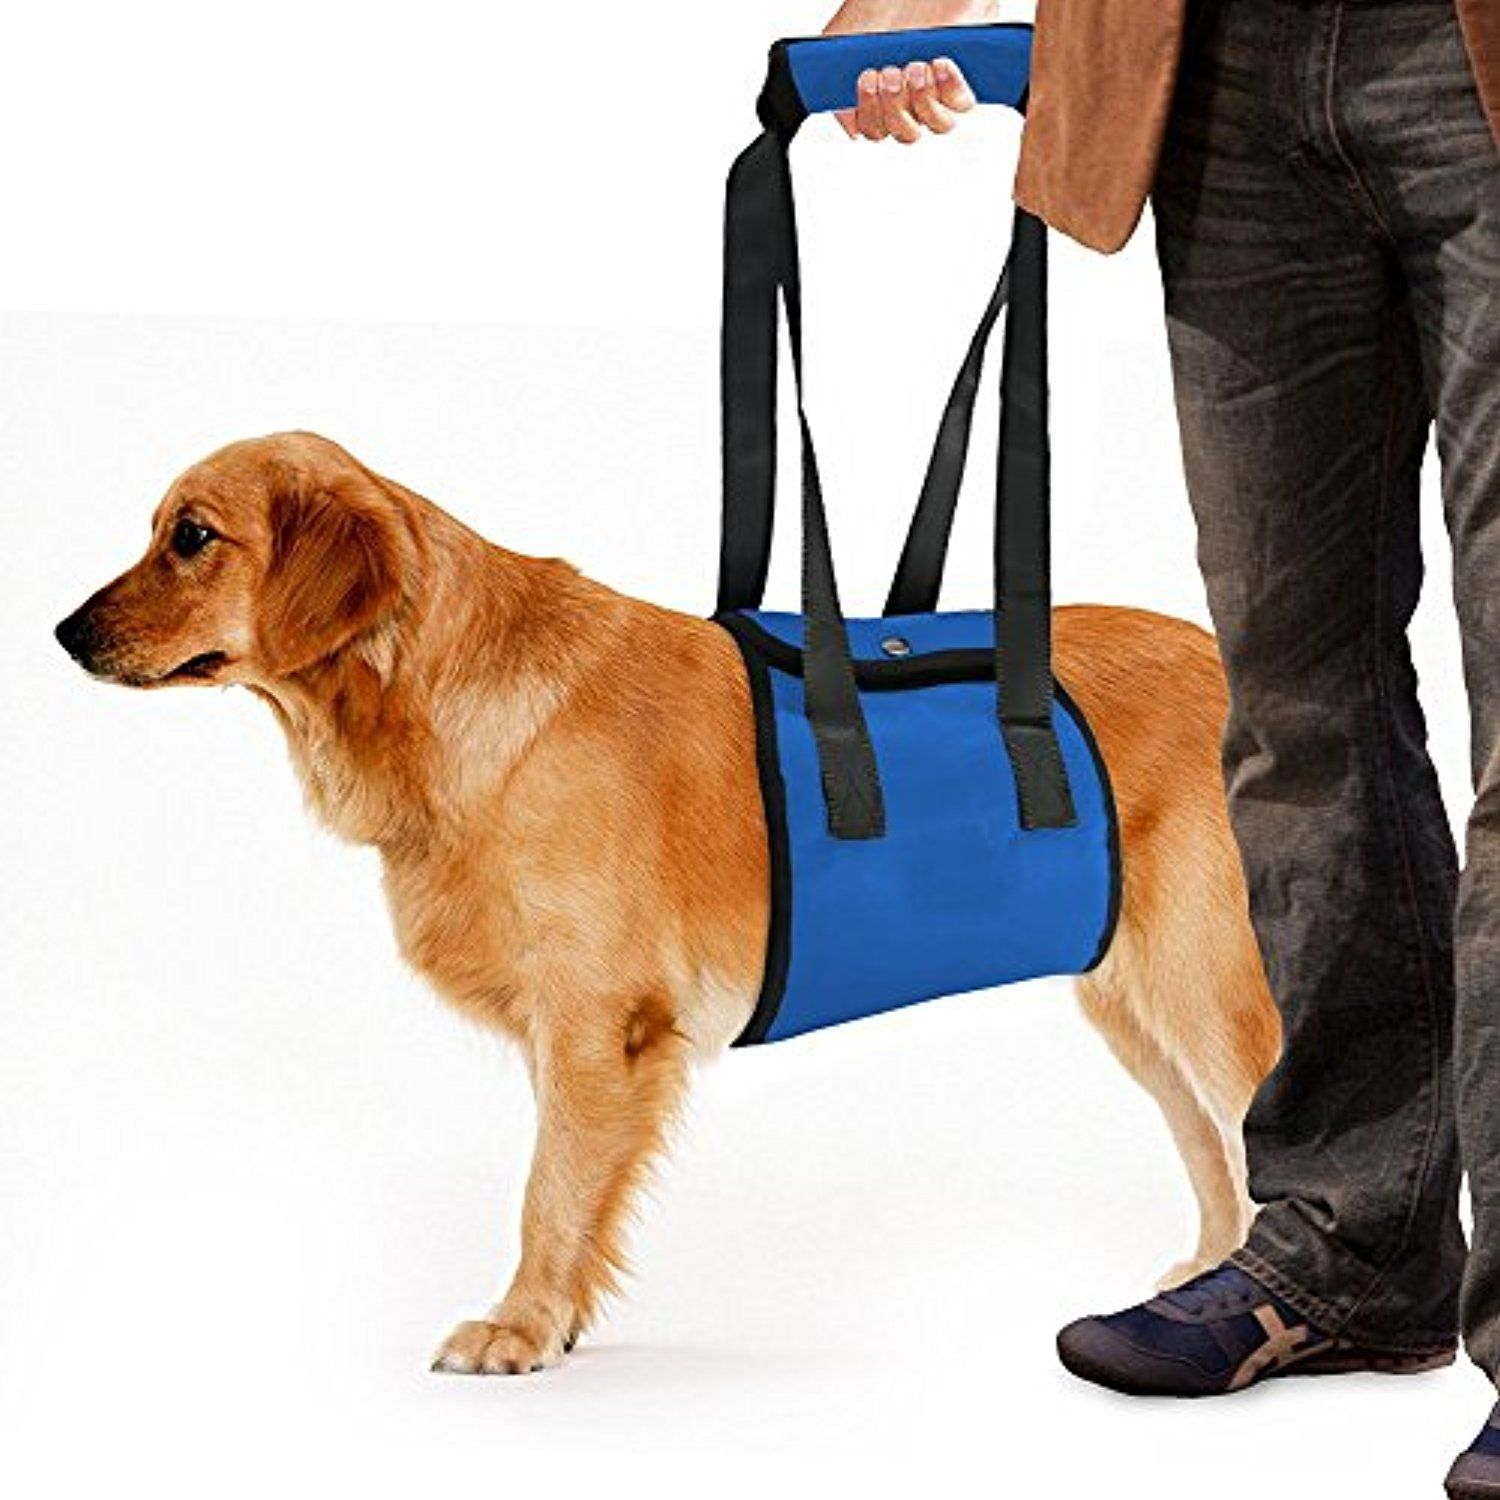 Blue Dog Lift Harness With Handle Auxiliary Belt For Xl Large